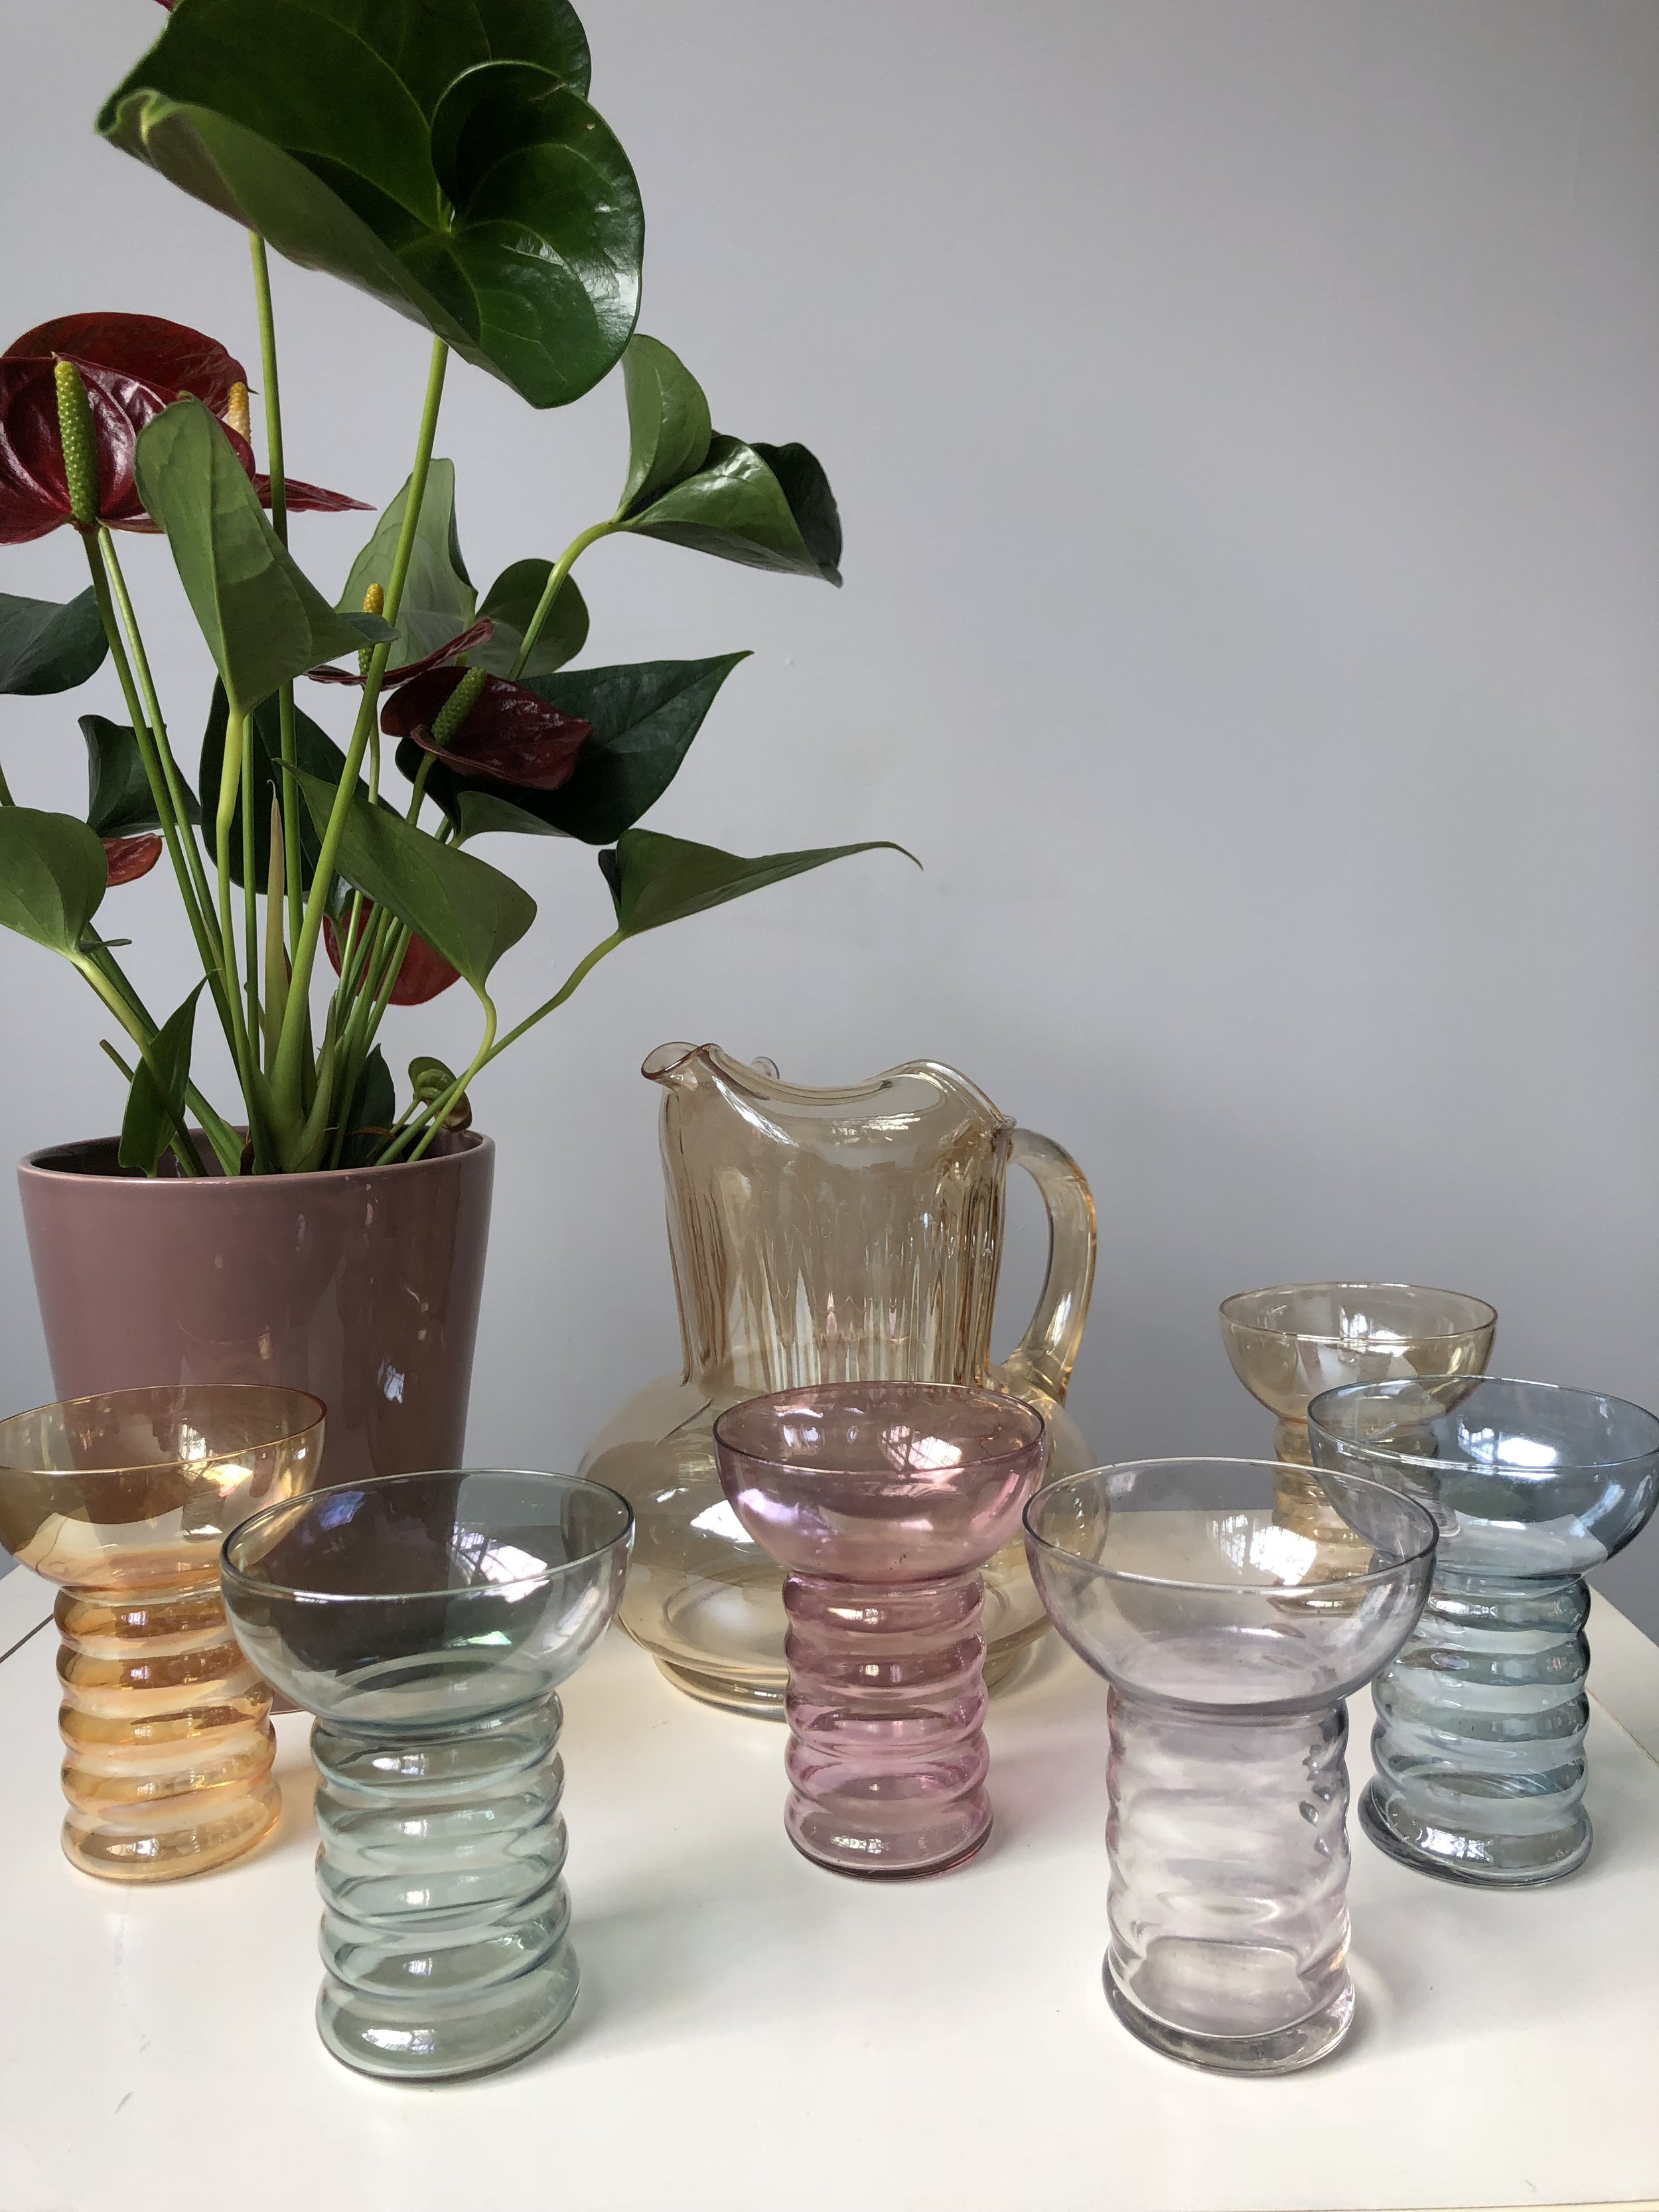 Vintage Home Goods - From glassware sets, to enamelware to a unique letter holder. Everyone always appreciates being able to add special touches in their home.